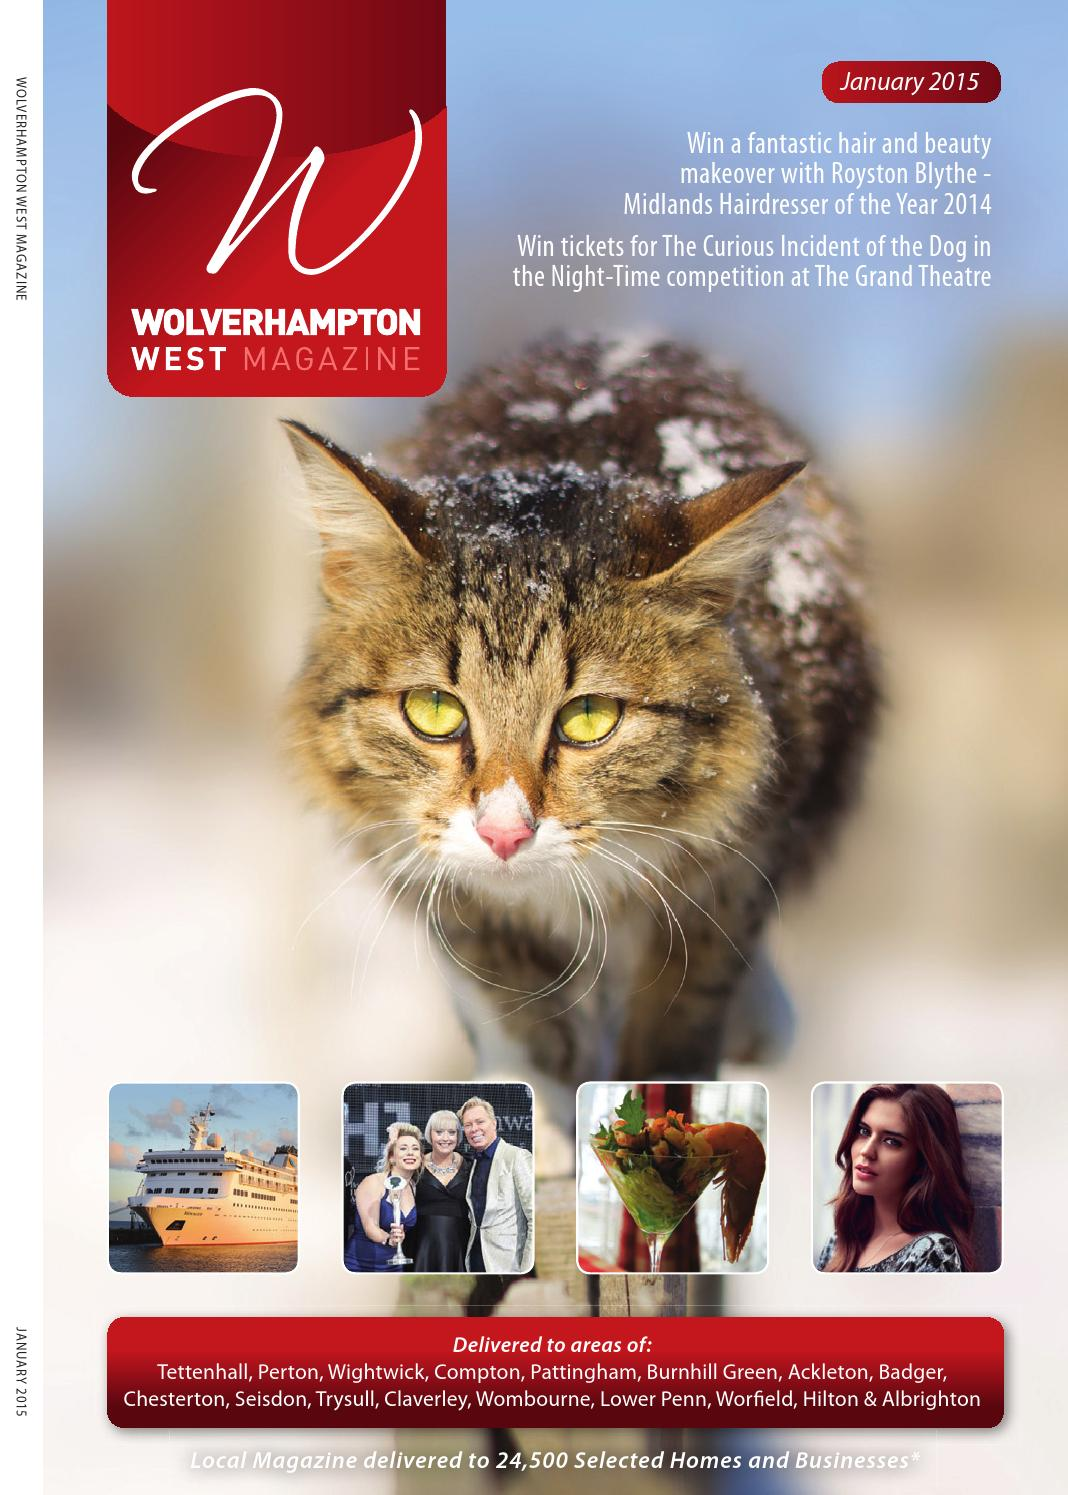 Wolverhampton West Magazine